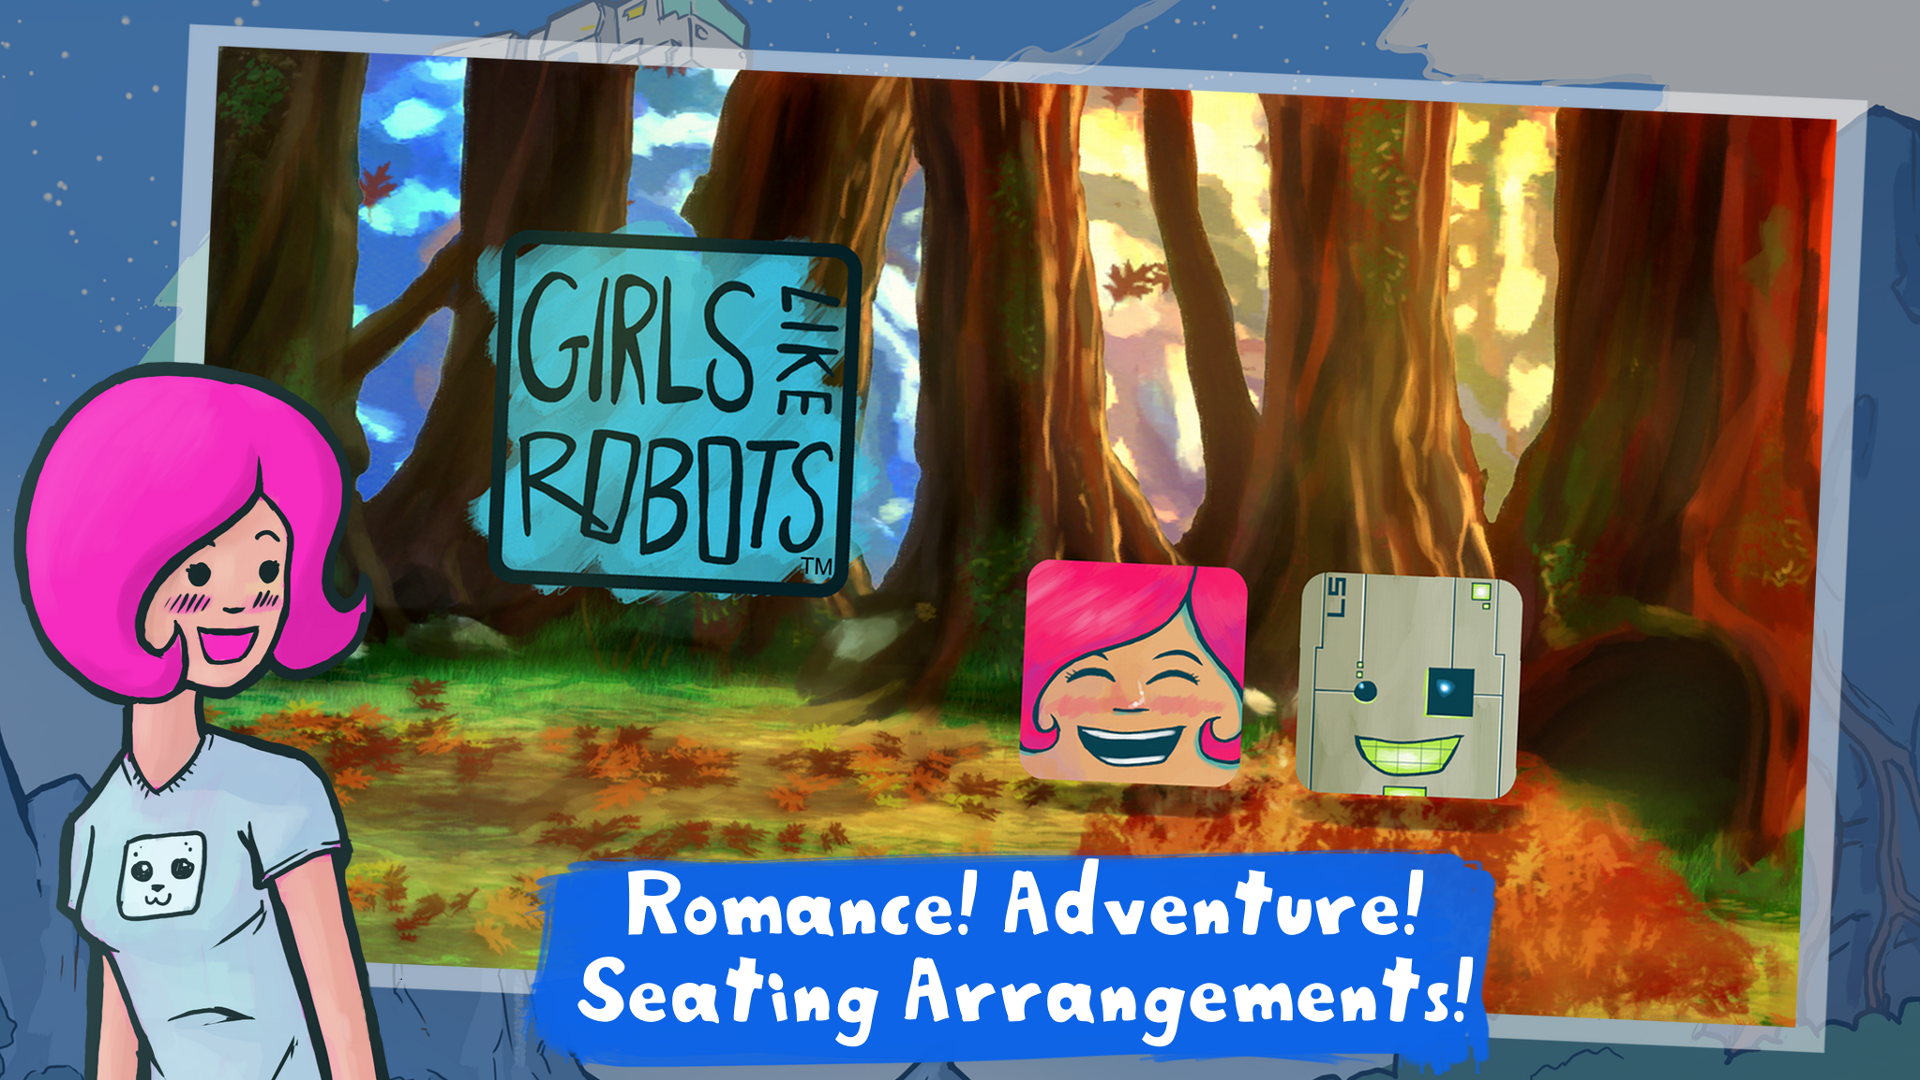 Girls Like Robots Makes A Fun-filled Foray Into The Adventure-Seating Arrangement Genre